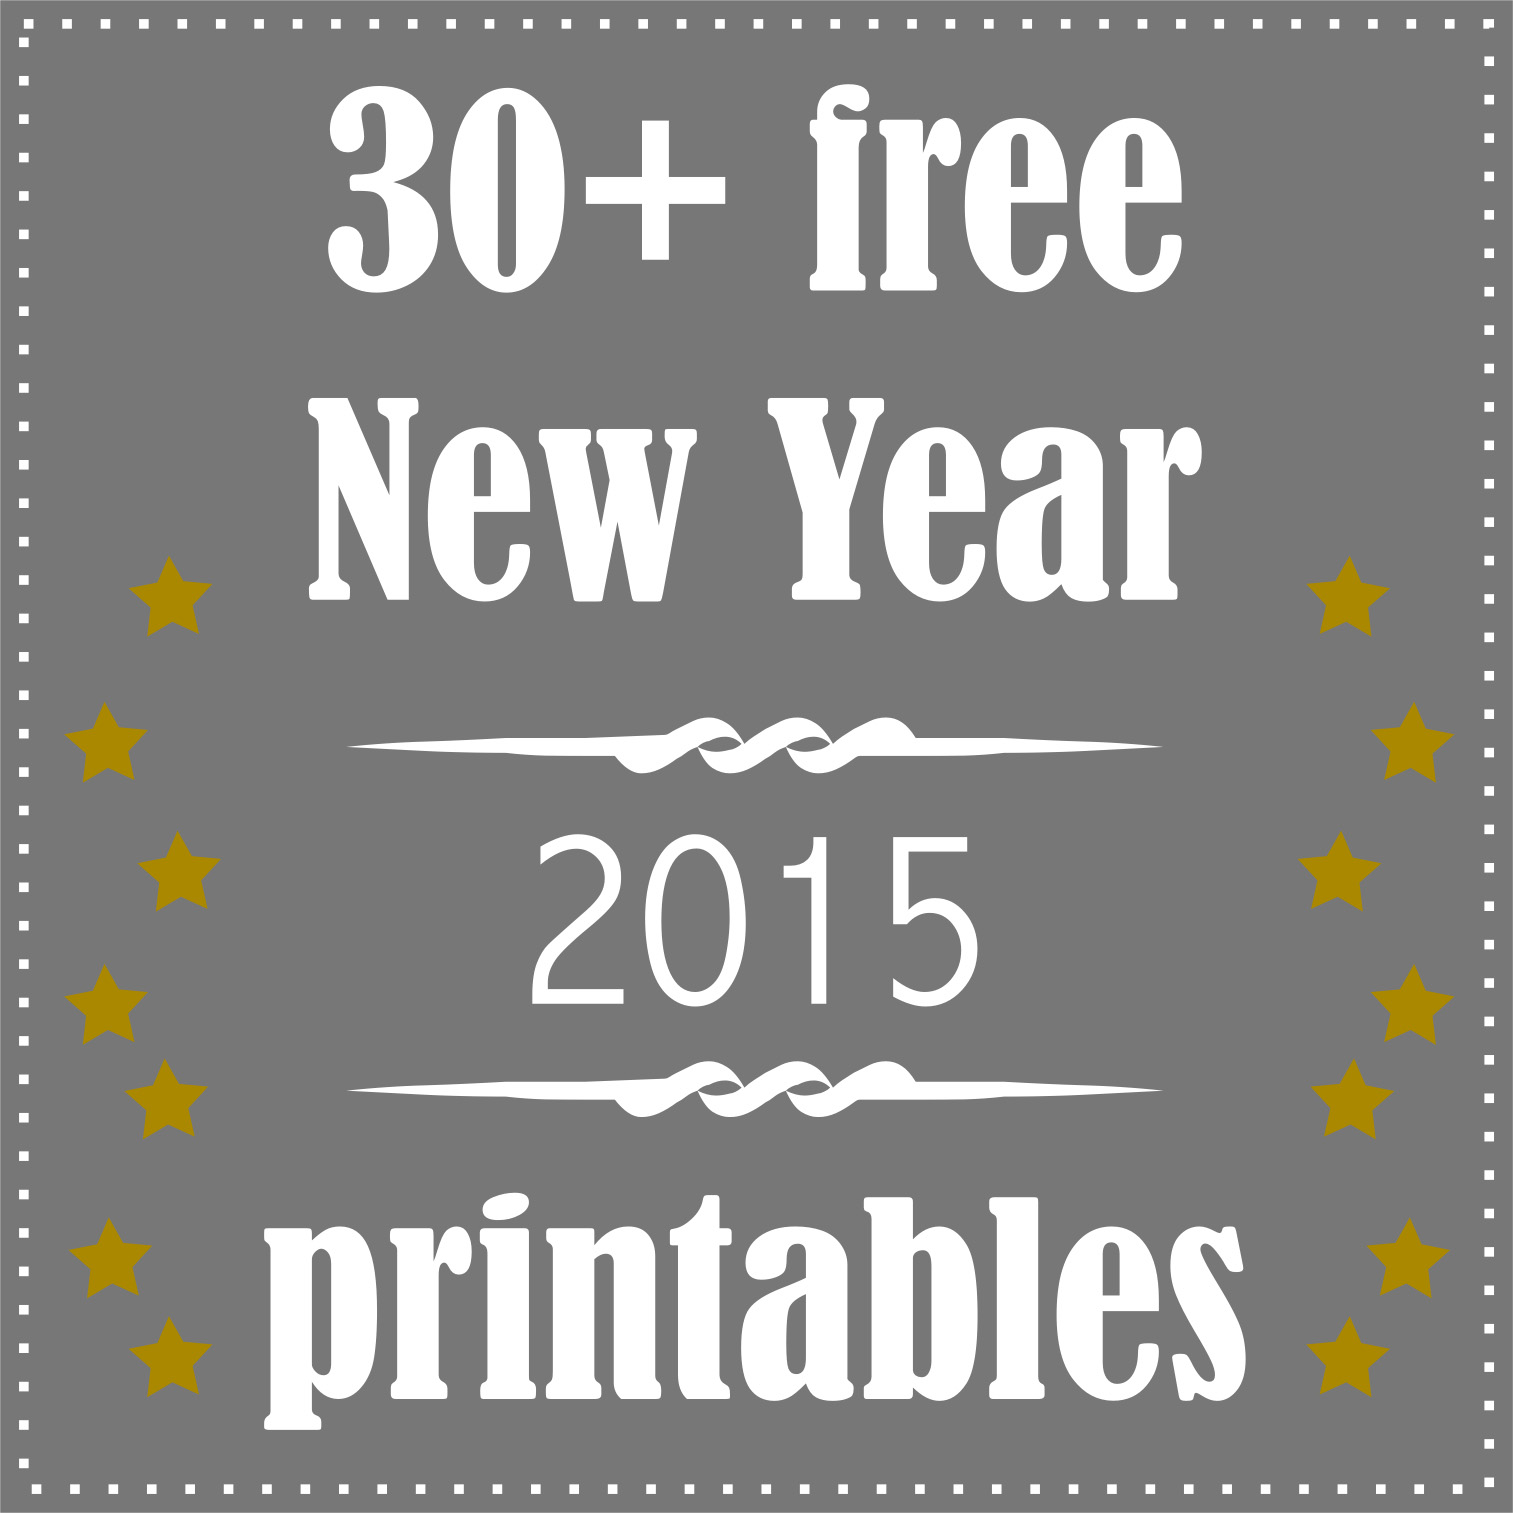 8 Images of New Year's Eve Printables